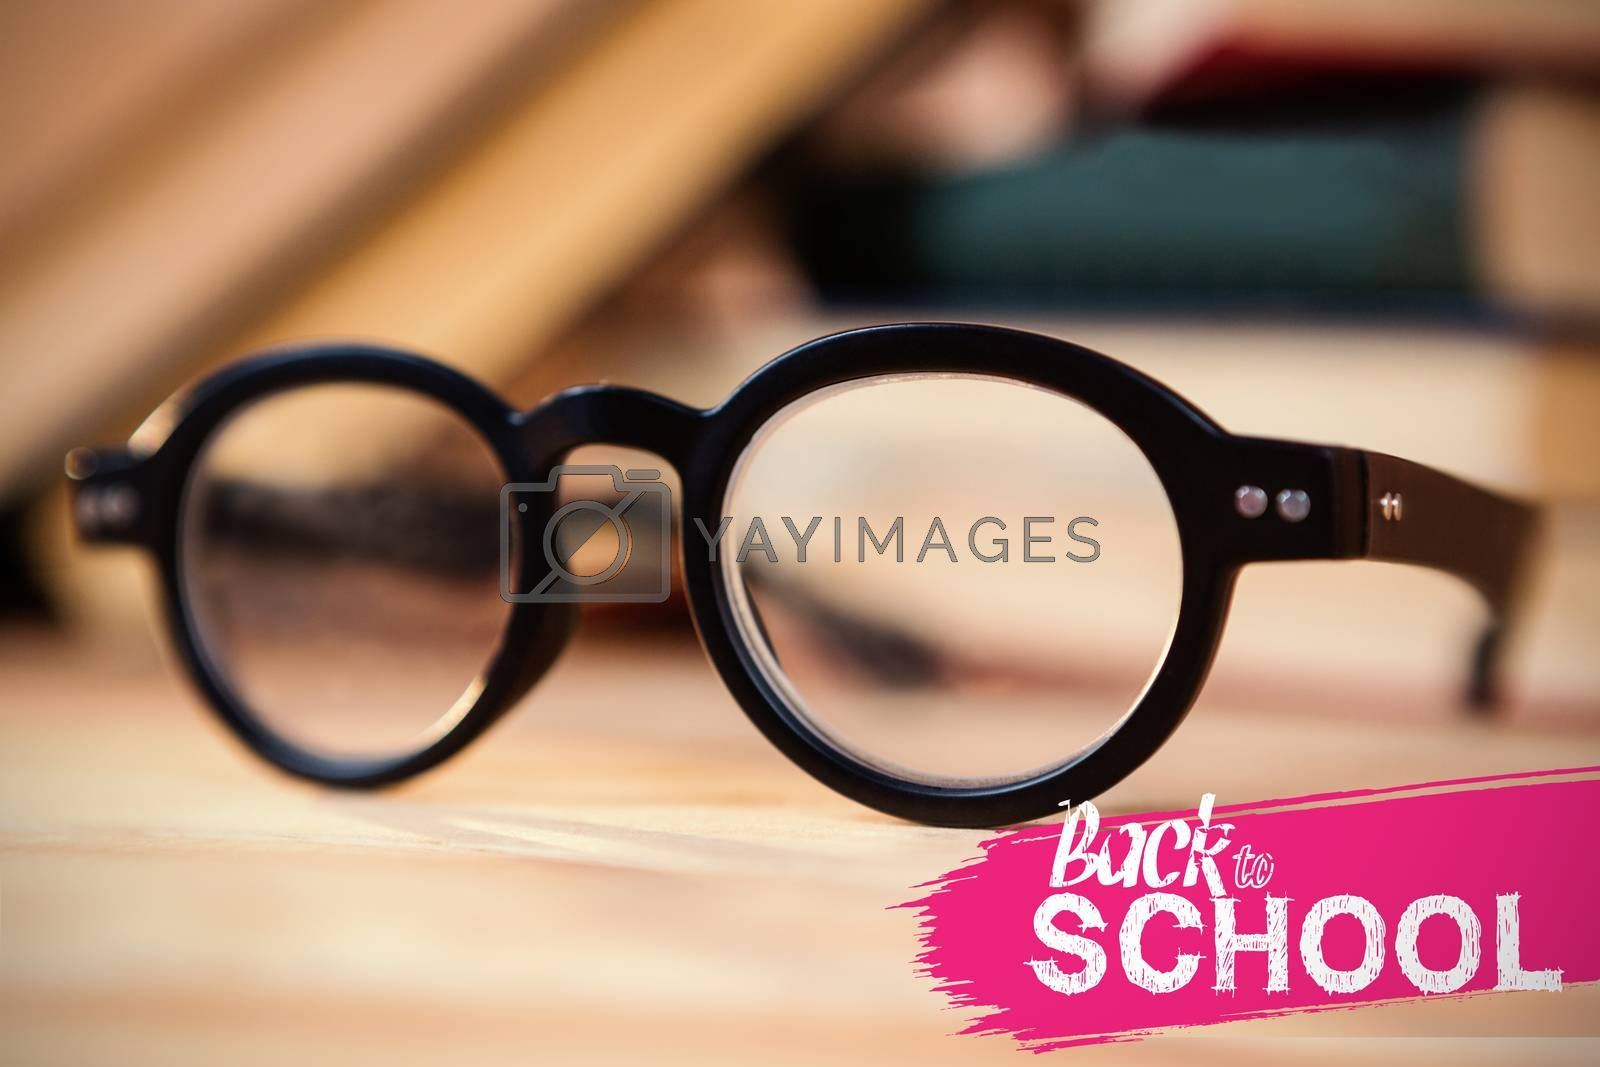 back to school against spectacles on table